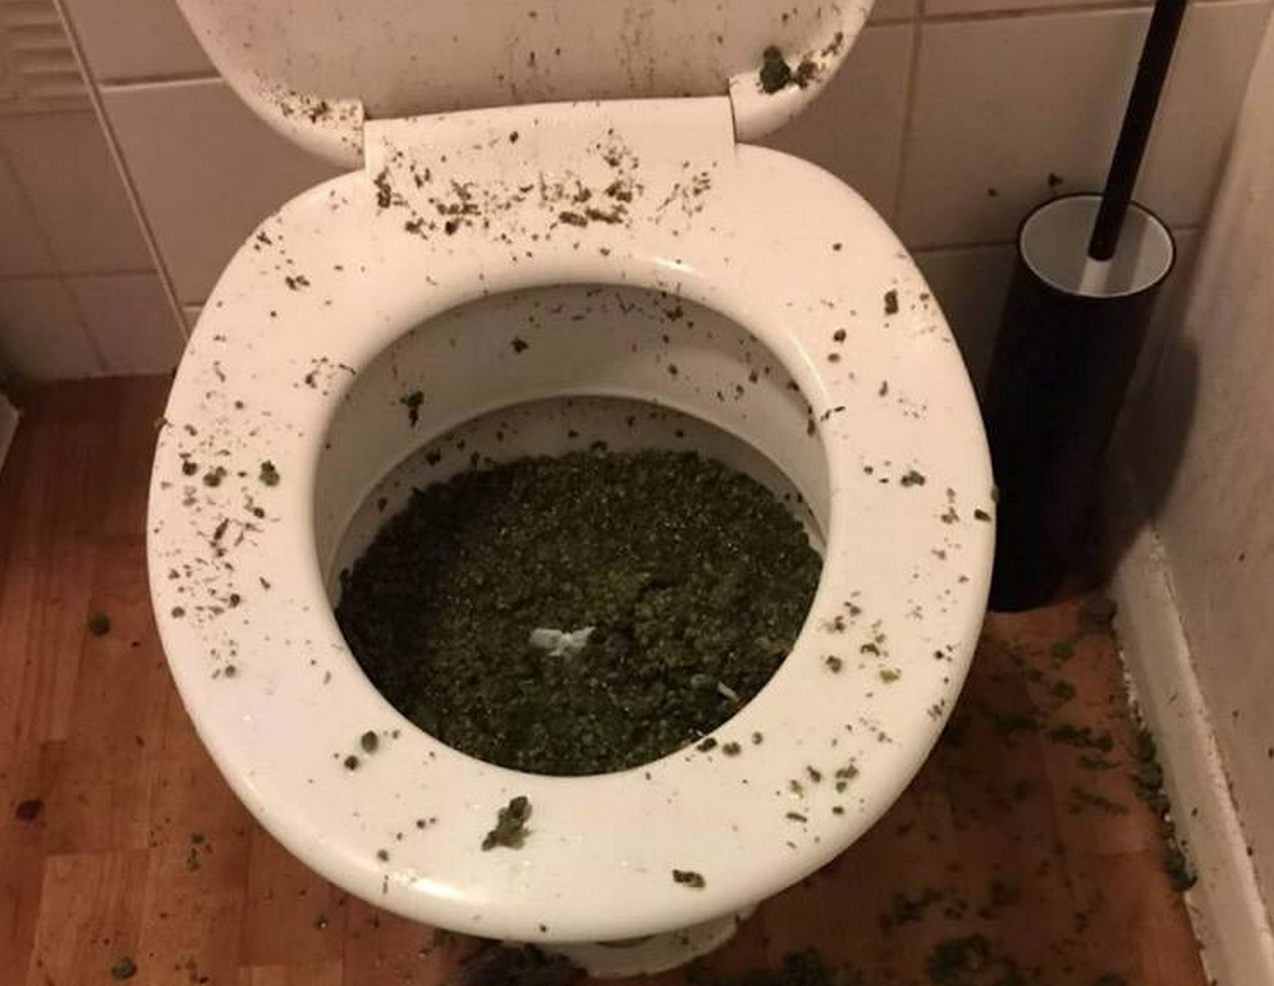 Police Find Toilet Full Of Weed After Smelling It Through The Letterbox Screen Shot 2015 04 29 at 21.58.11